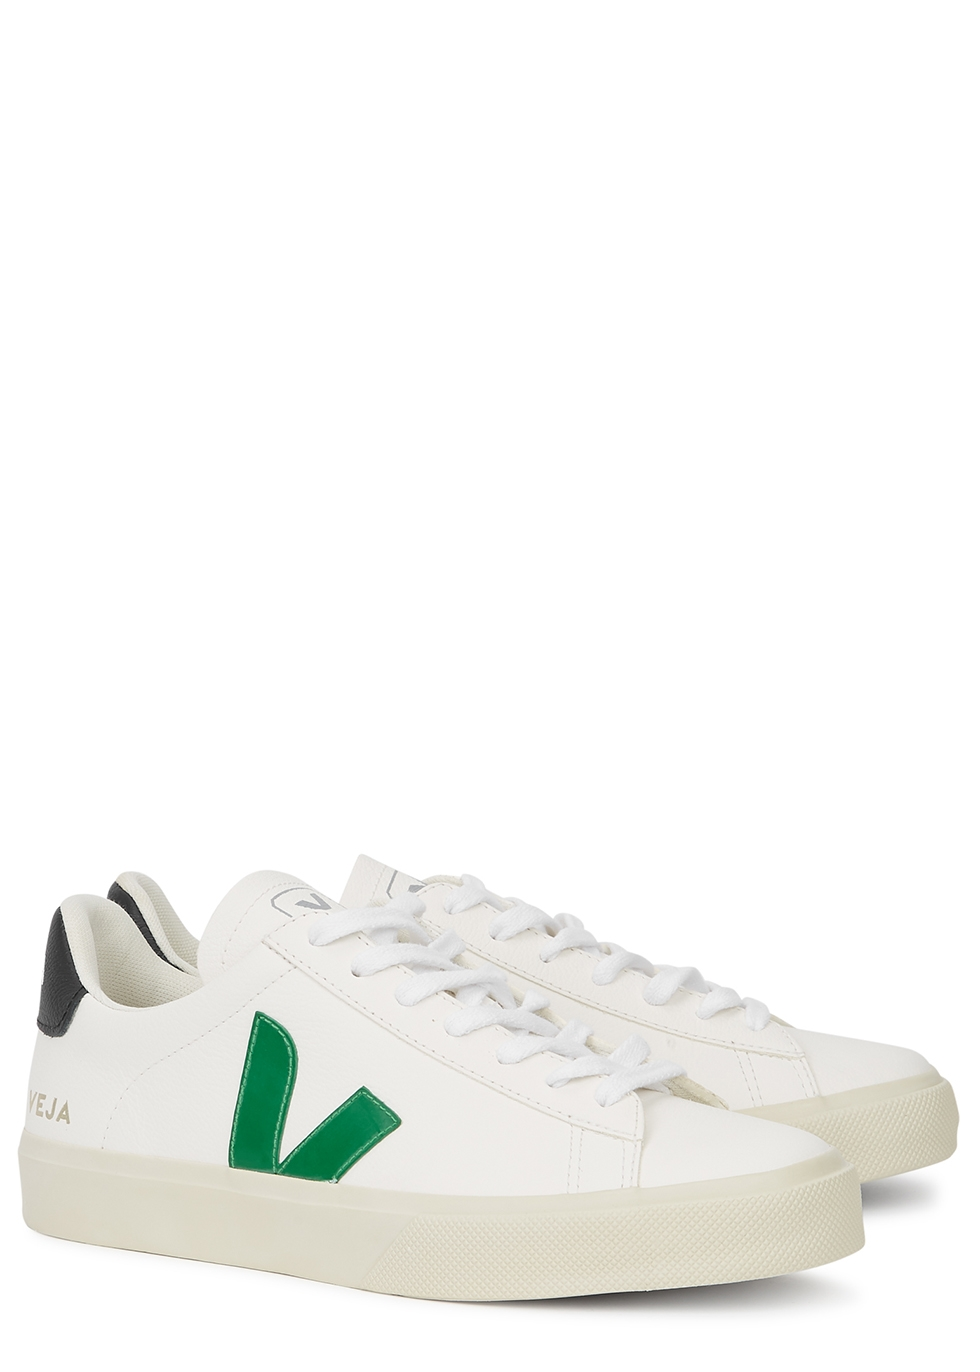 Veja Campo white leather sneakers